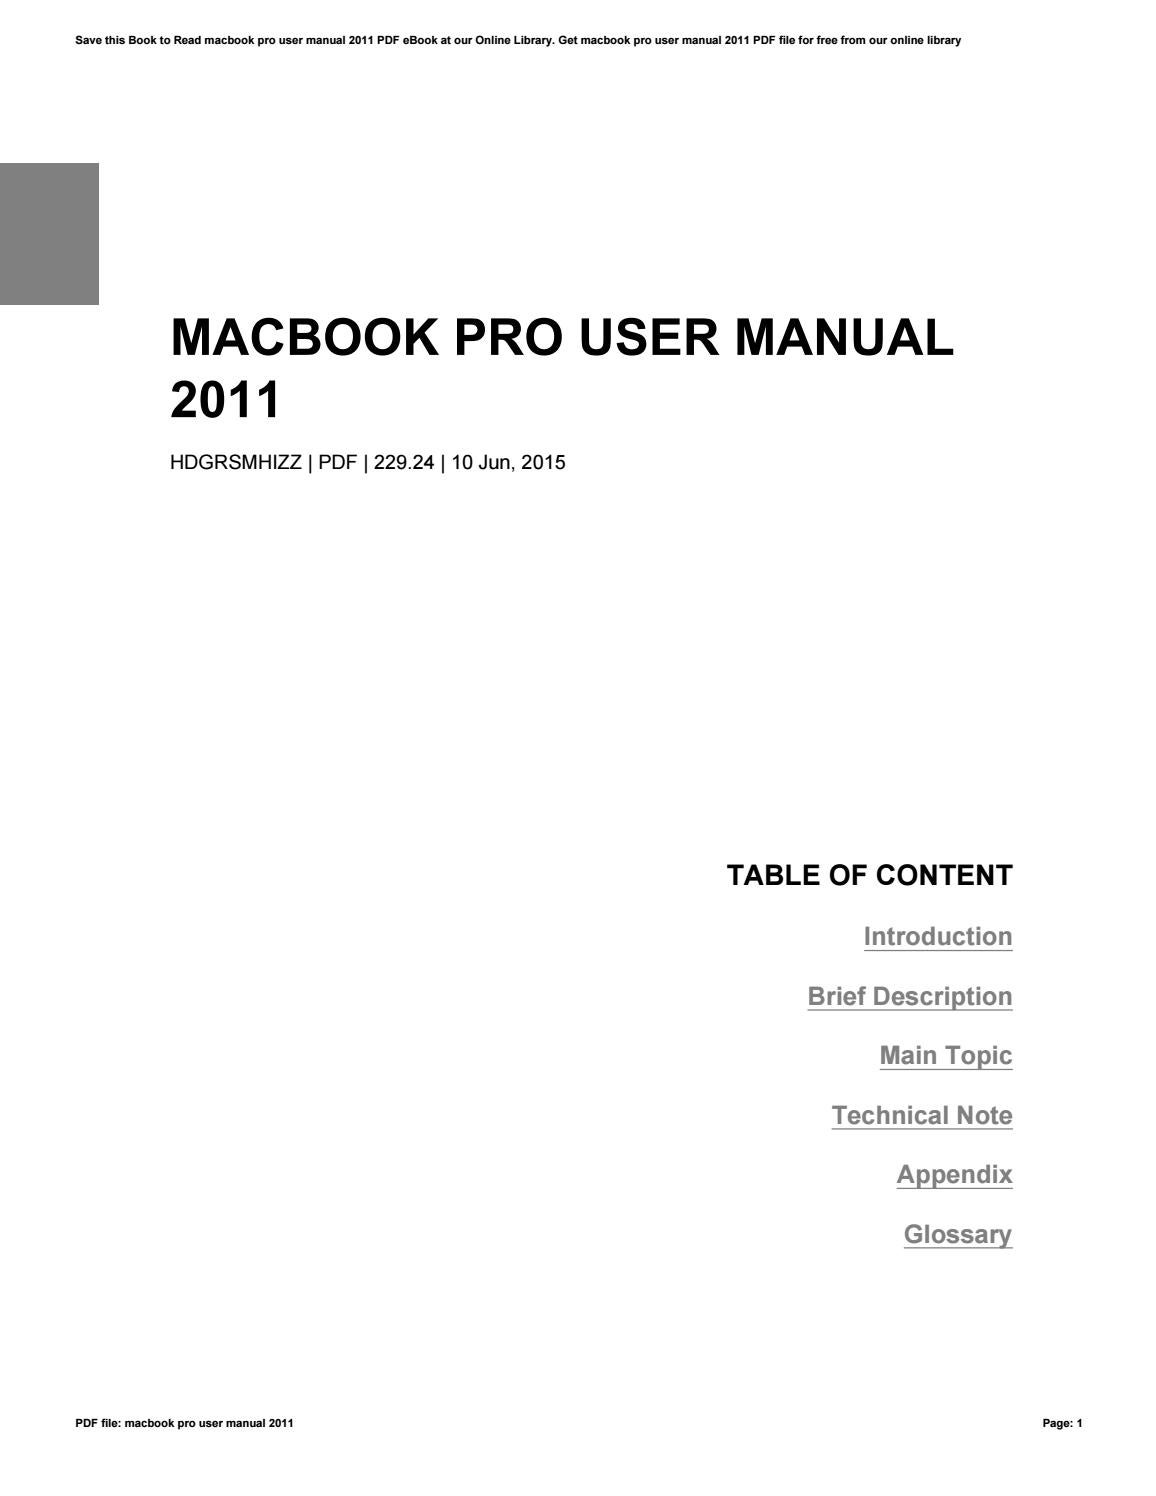 macbook pro user manual 2011 by karlnakamura4838 issuu rh issuu com 15 Inch MacBook Pro Diagram 15 Inch MacBook Pro Diagram